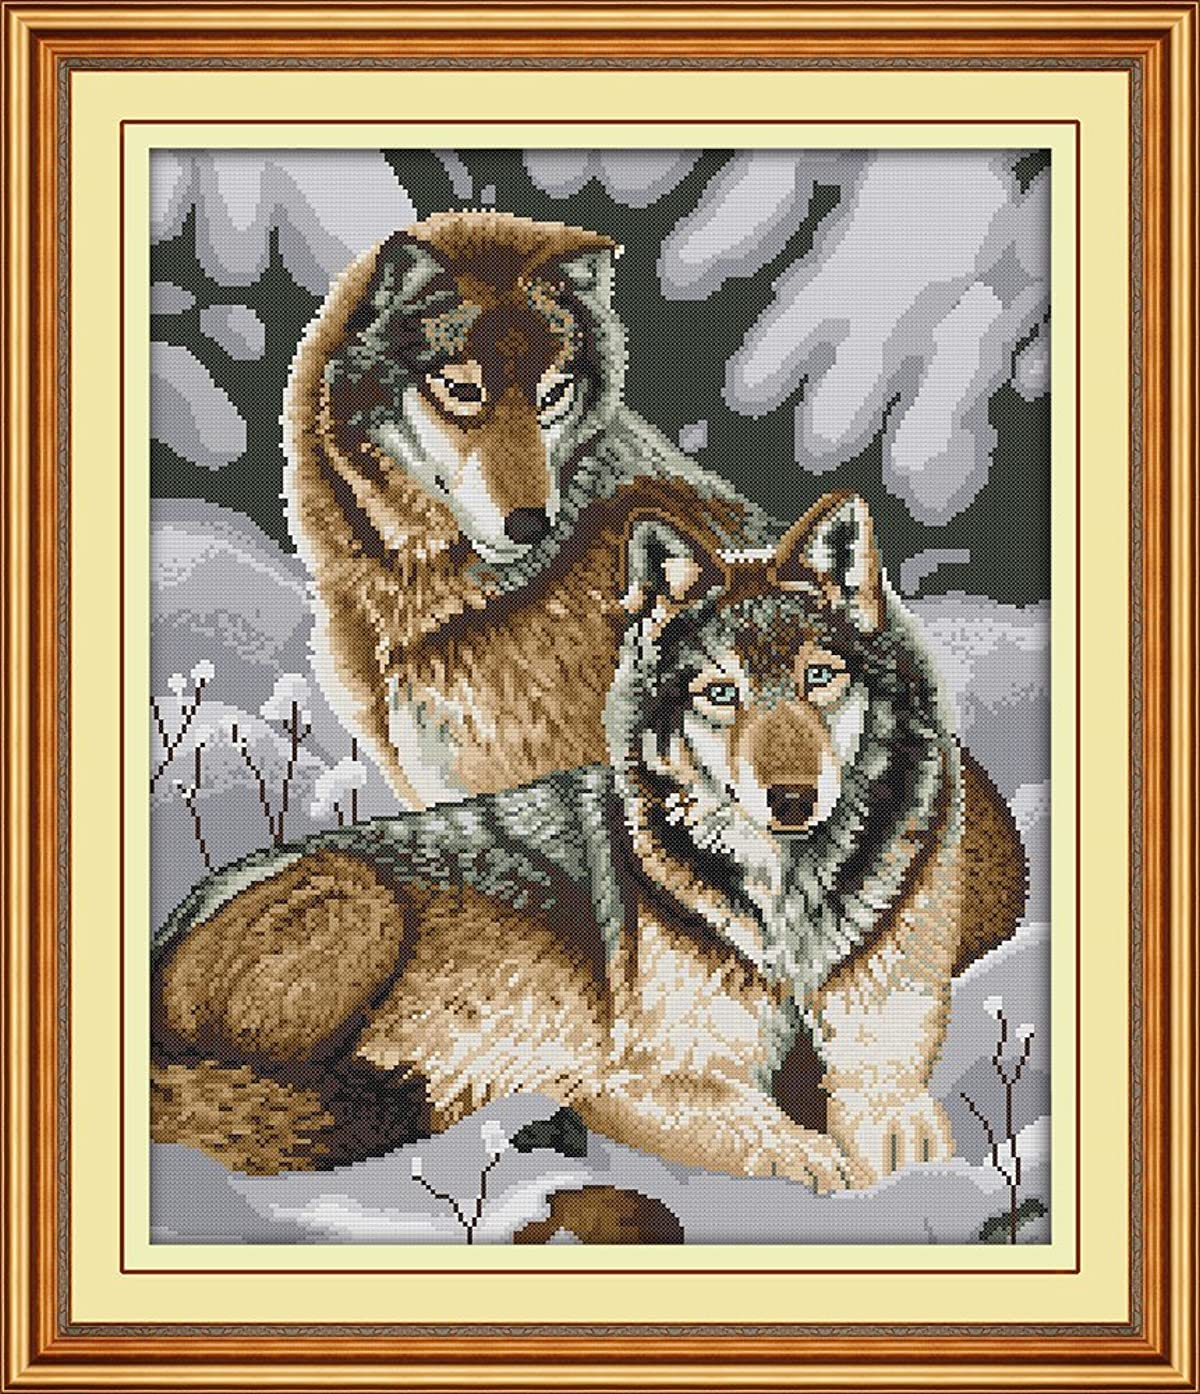 Joy Sunday Cross Stitch Kit 14CT Stamped Embroidery Kits Precise Printed Needlework - Snow Wolves 44×52CM